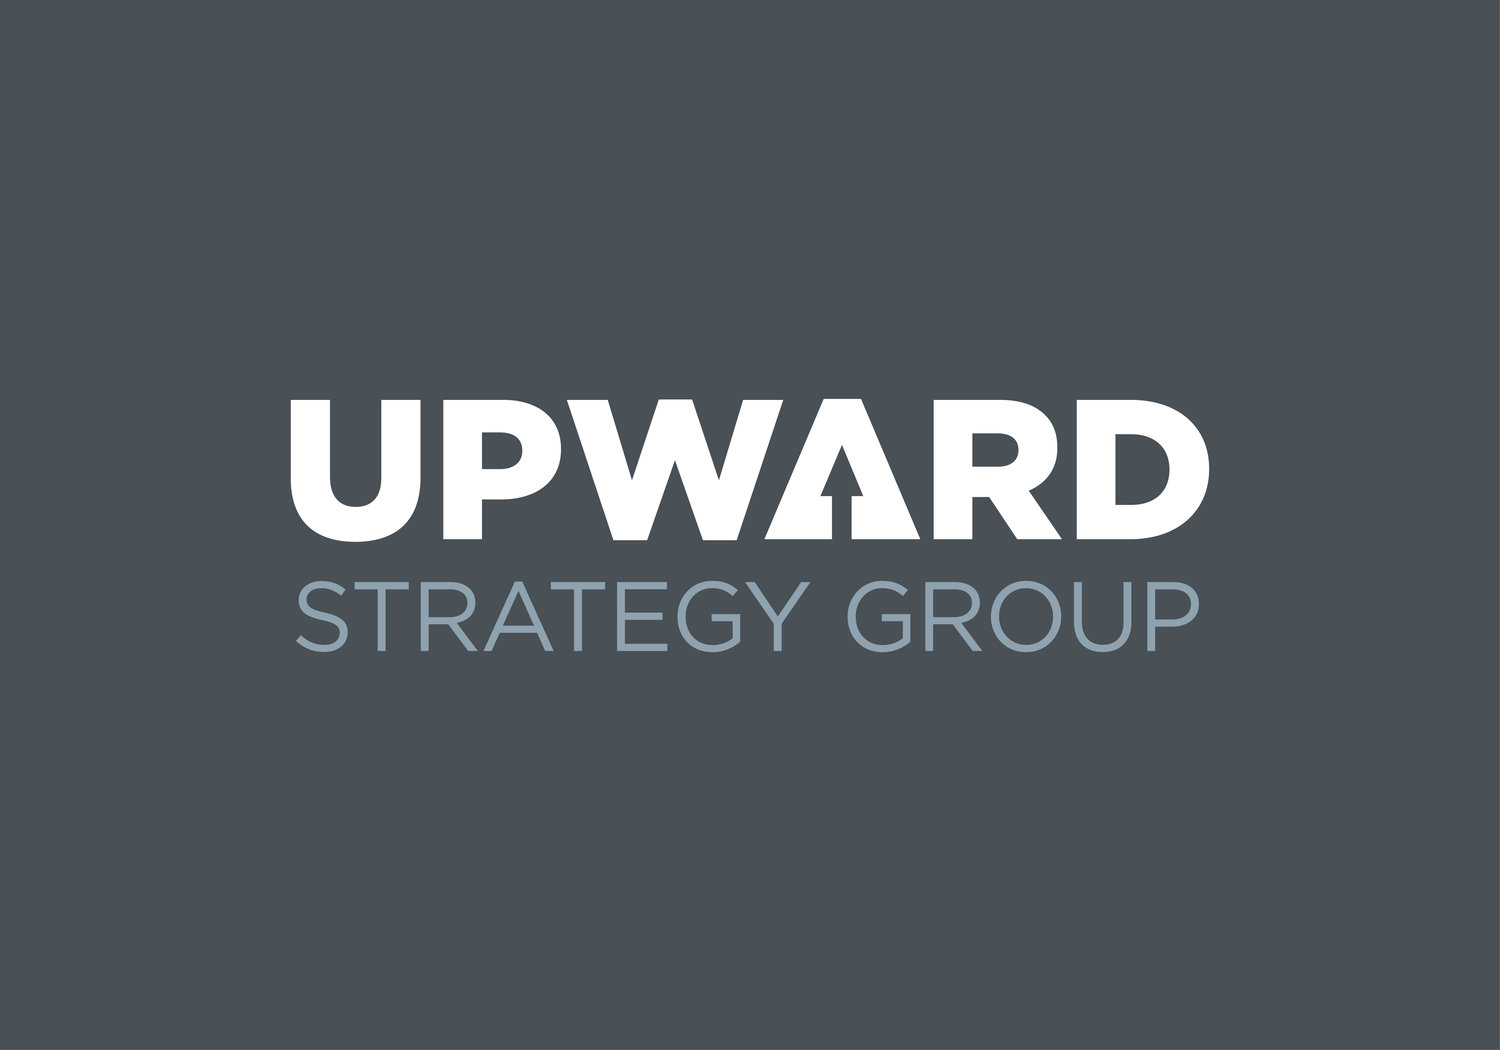 Upward Strategy Group